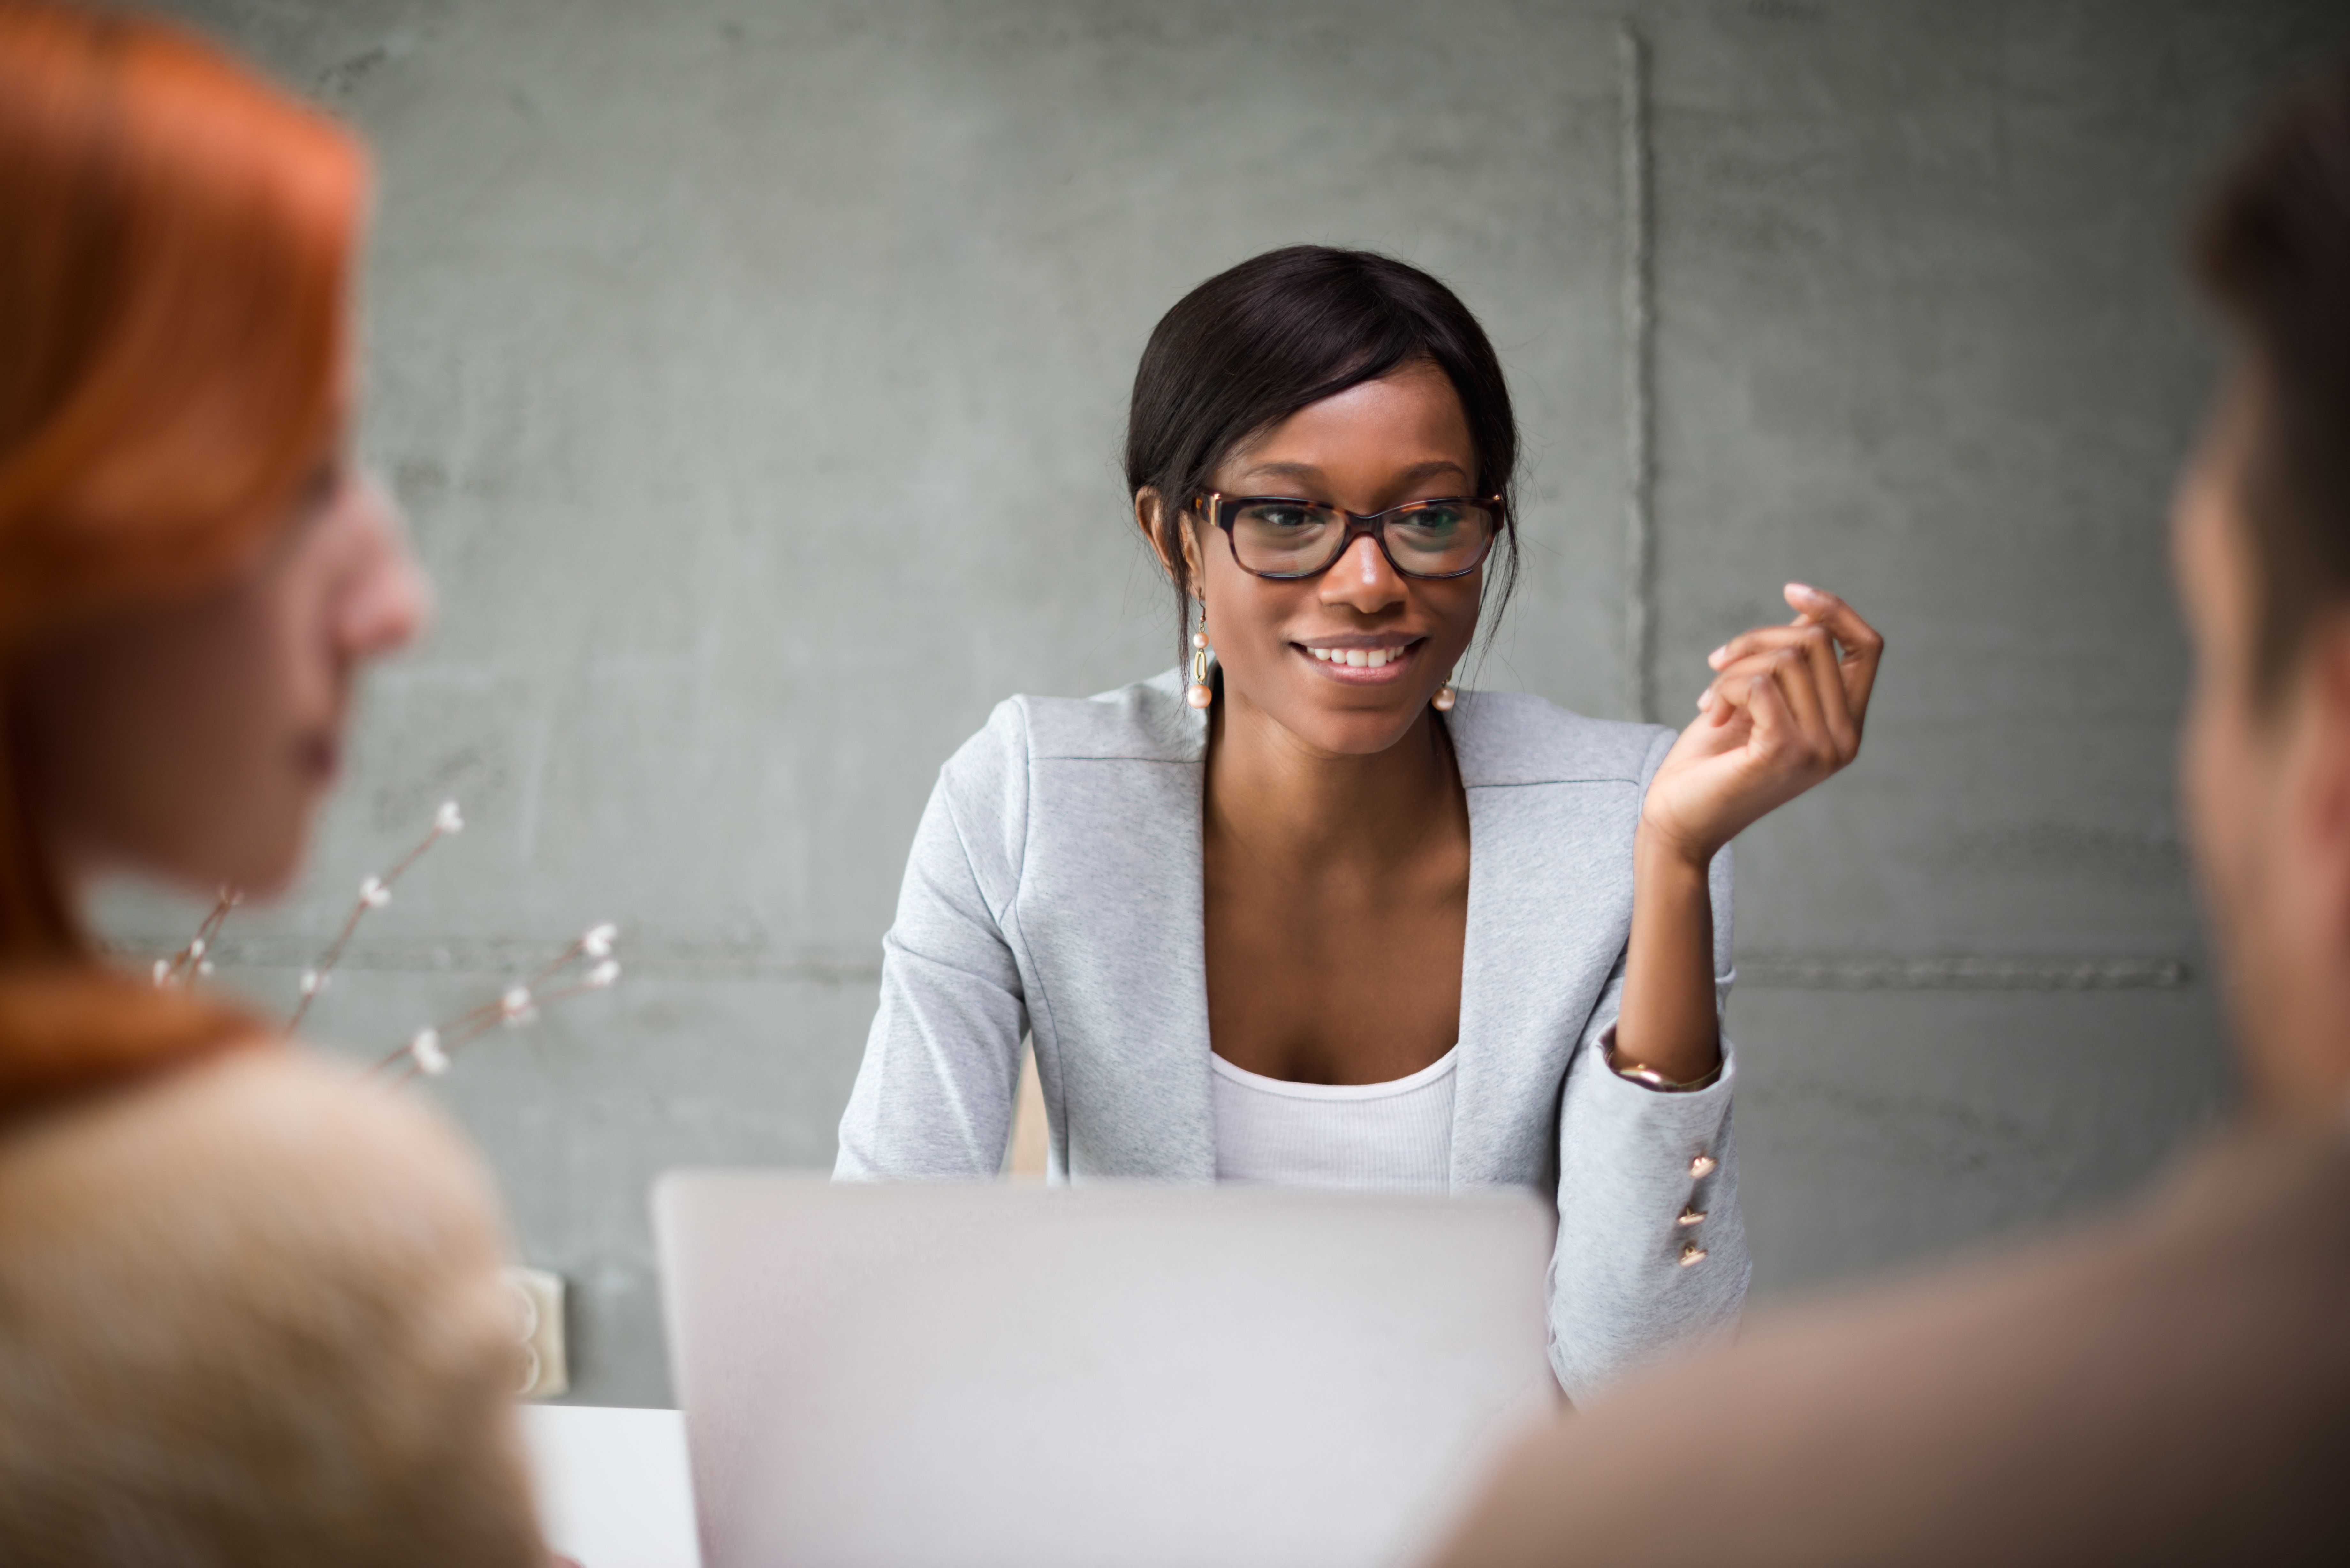 Before hiring a financial advisor, make sure you're on the same page when it comes to communication level and investment philosophy.